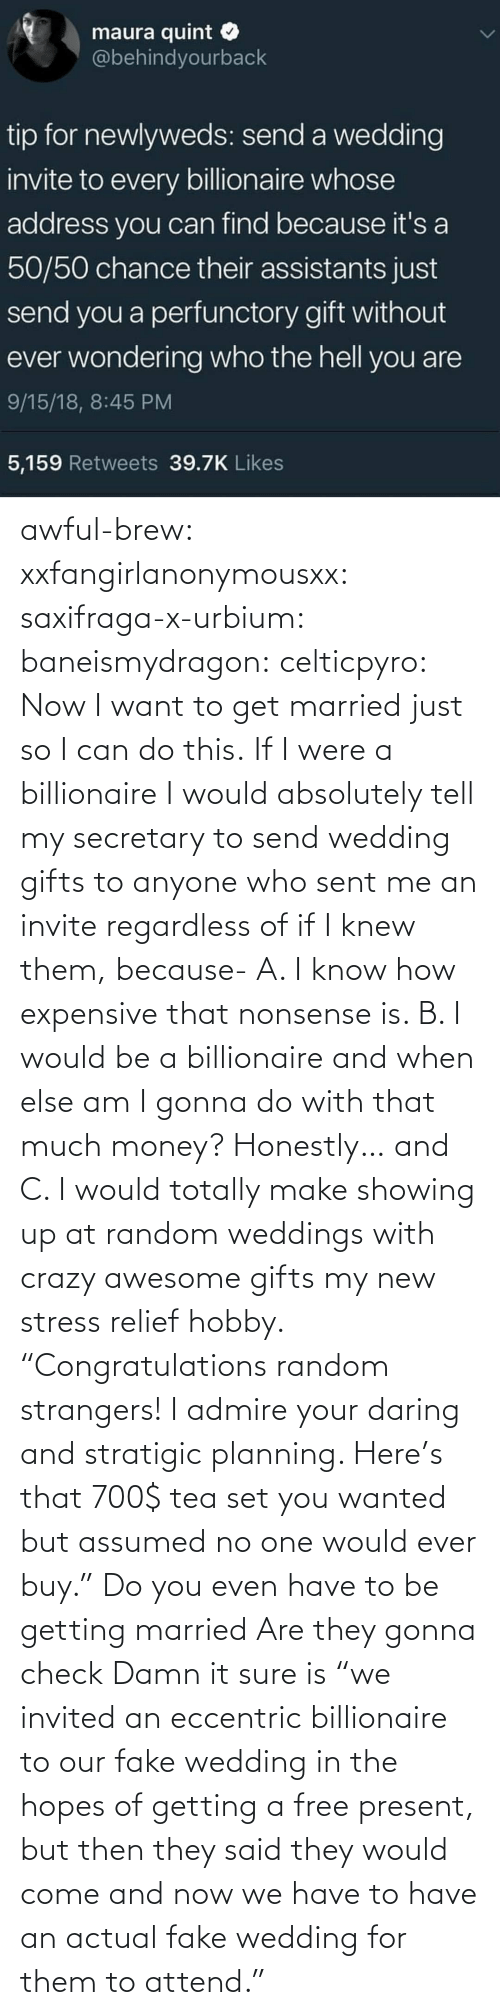 "gonna: awful-brew:  xxfangirlanonymousxx:  saxifraga-x-urbium:  baneismydragon:  celticpyro: Now I want to get married just so I can do this.  If I were a billionaire I would absolutely tell my secretary to send wedding gifts to anyone who sent me an invite regardless of if I knew them, because- A. I know how expensive that nonsense is. B. I would be a billionaire and when else am I gonna do with that much money? Honestly… and C. I would totally make showing up at random weddings with crazy awesome gifts my new stress relief hobby. ""Congratulations random strangers! I admire your daring and stratigic planning. Here's that 700$ tea set you wanted but assumed no one would ever buy.""   Do you even have to be getting married Are they gonna check   Damn it sure is  ""we invited an eccentric billionaire to our fake wedding in the hopes of getting a free present, but then they said they would come and now we have to have an actual fake wedding for them to attend."""